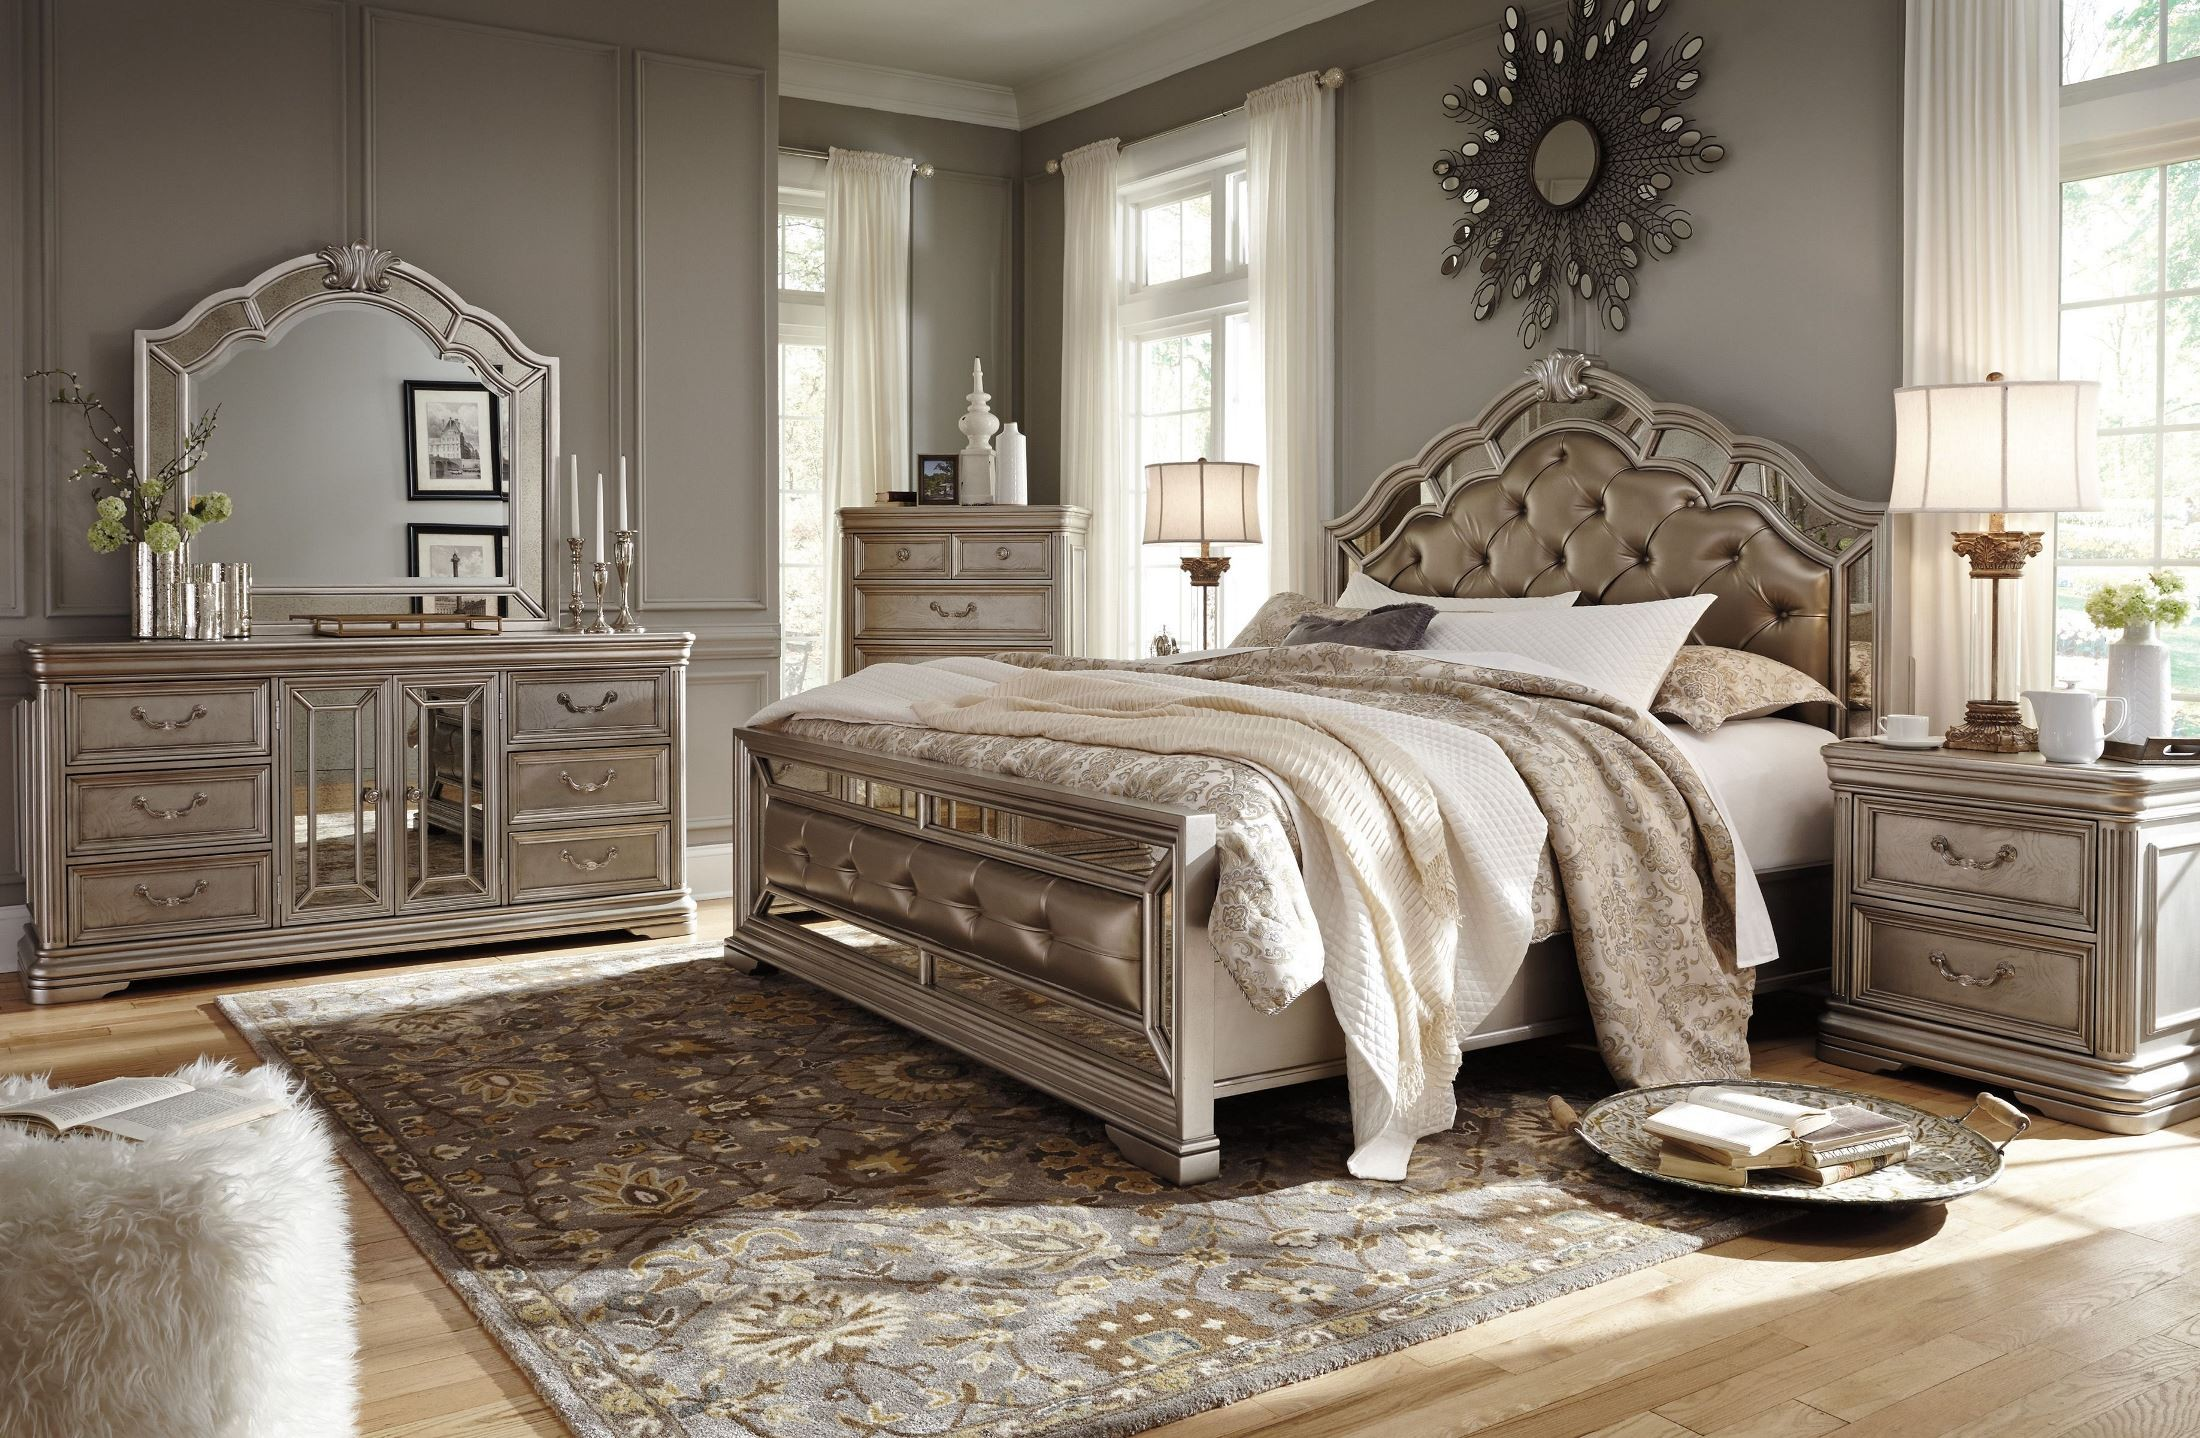 Black White And Gray Bedroom Ideas Birlanny Silver Upholstered Panel Bedroom Set B720 57 54